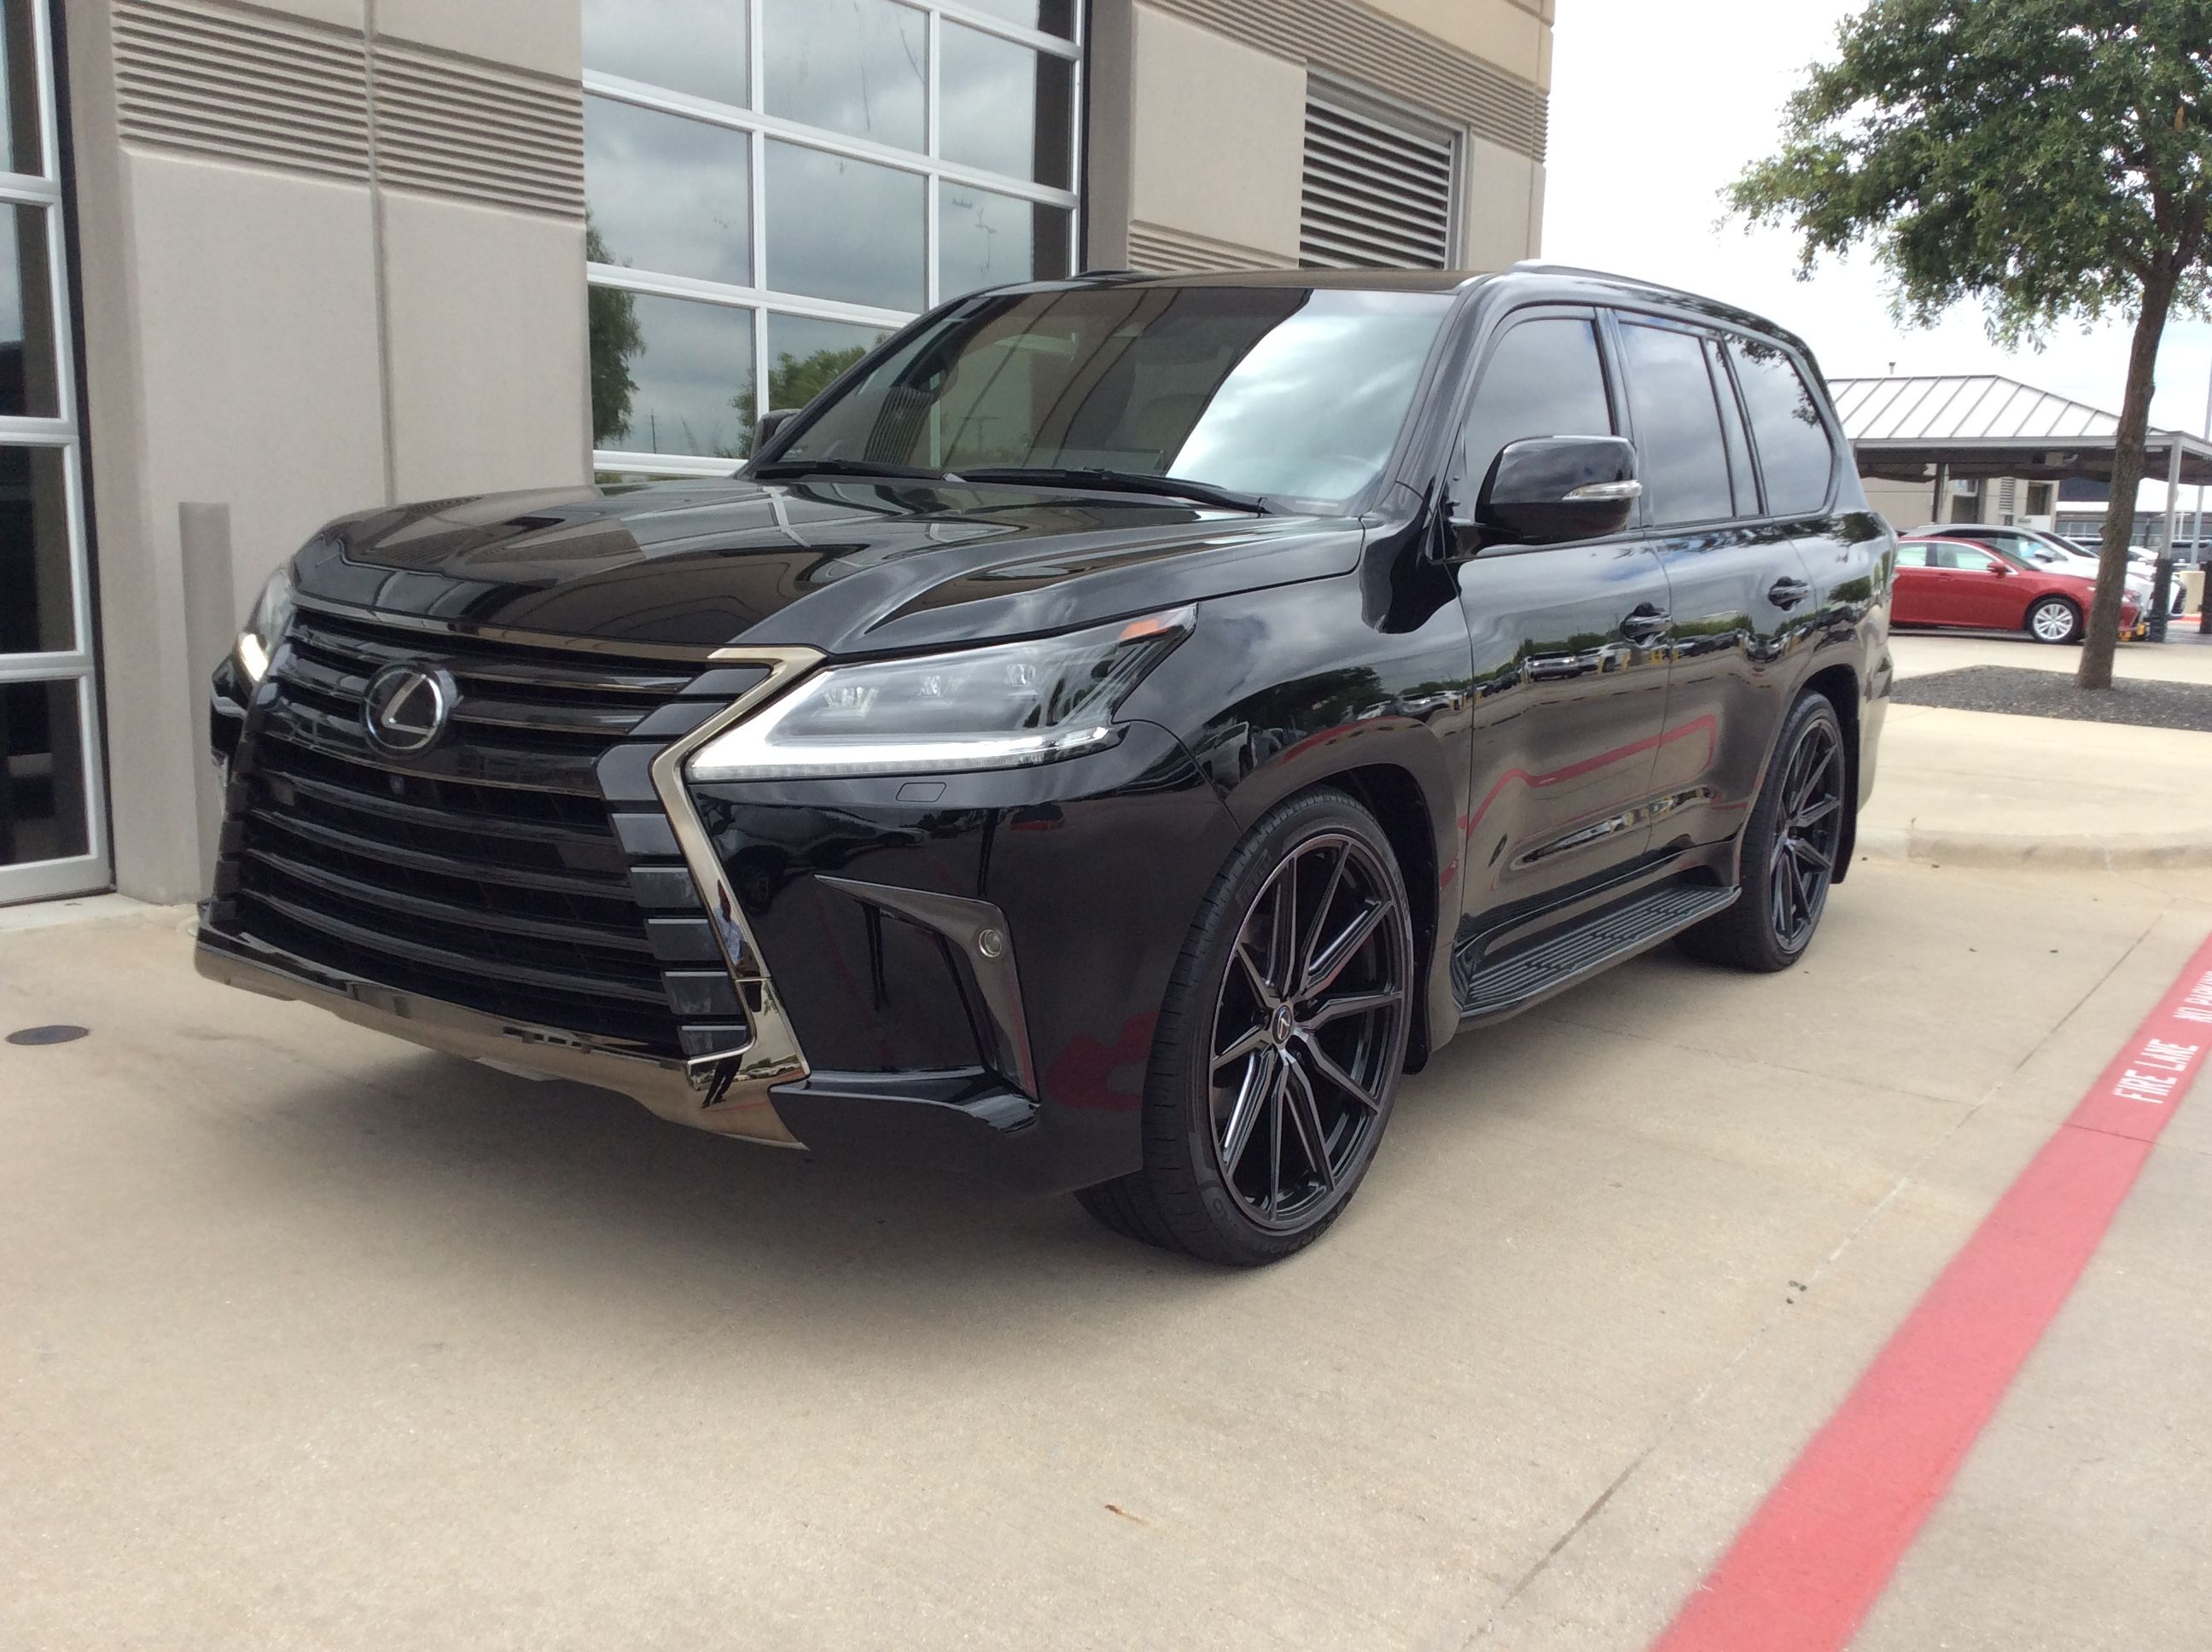 2019 Lexus Lx570 Inspiration Edition With 24 Double Tinted